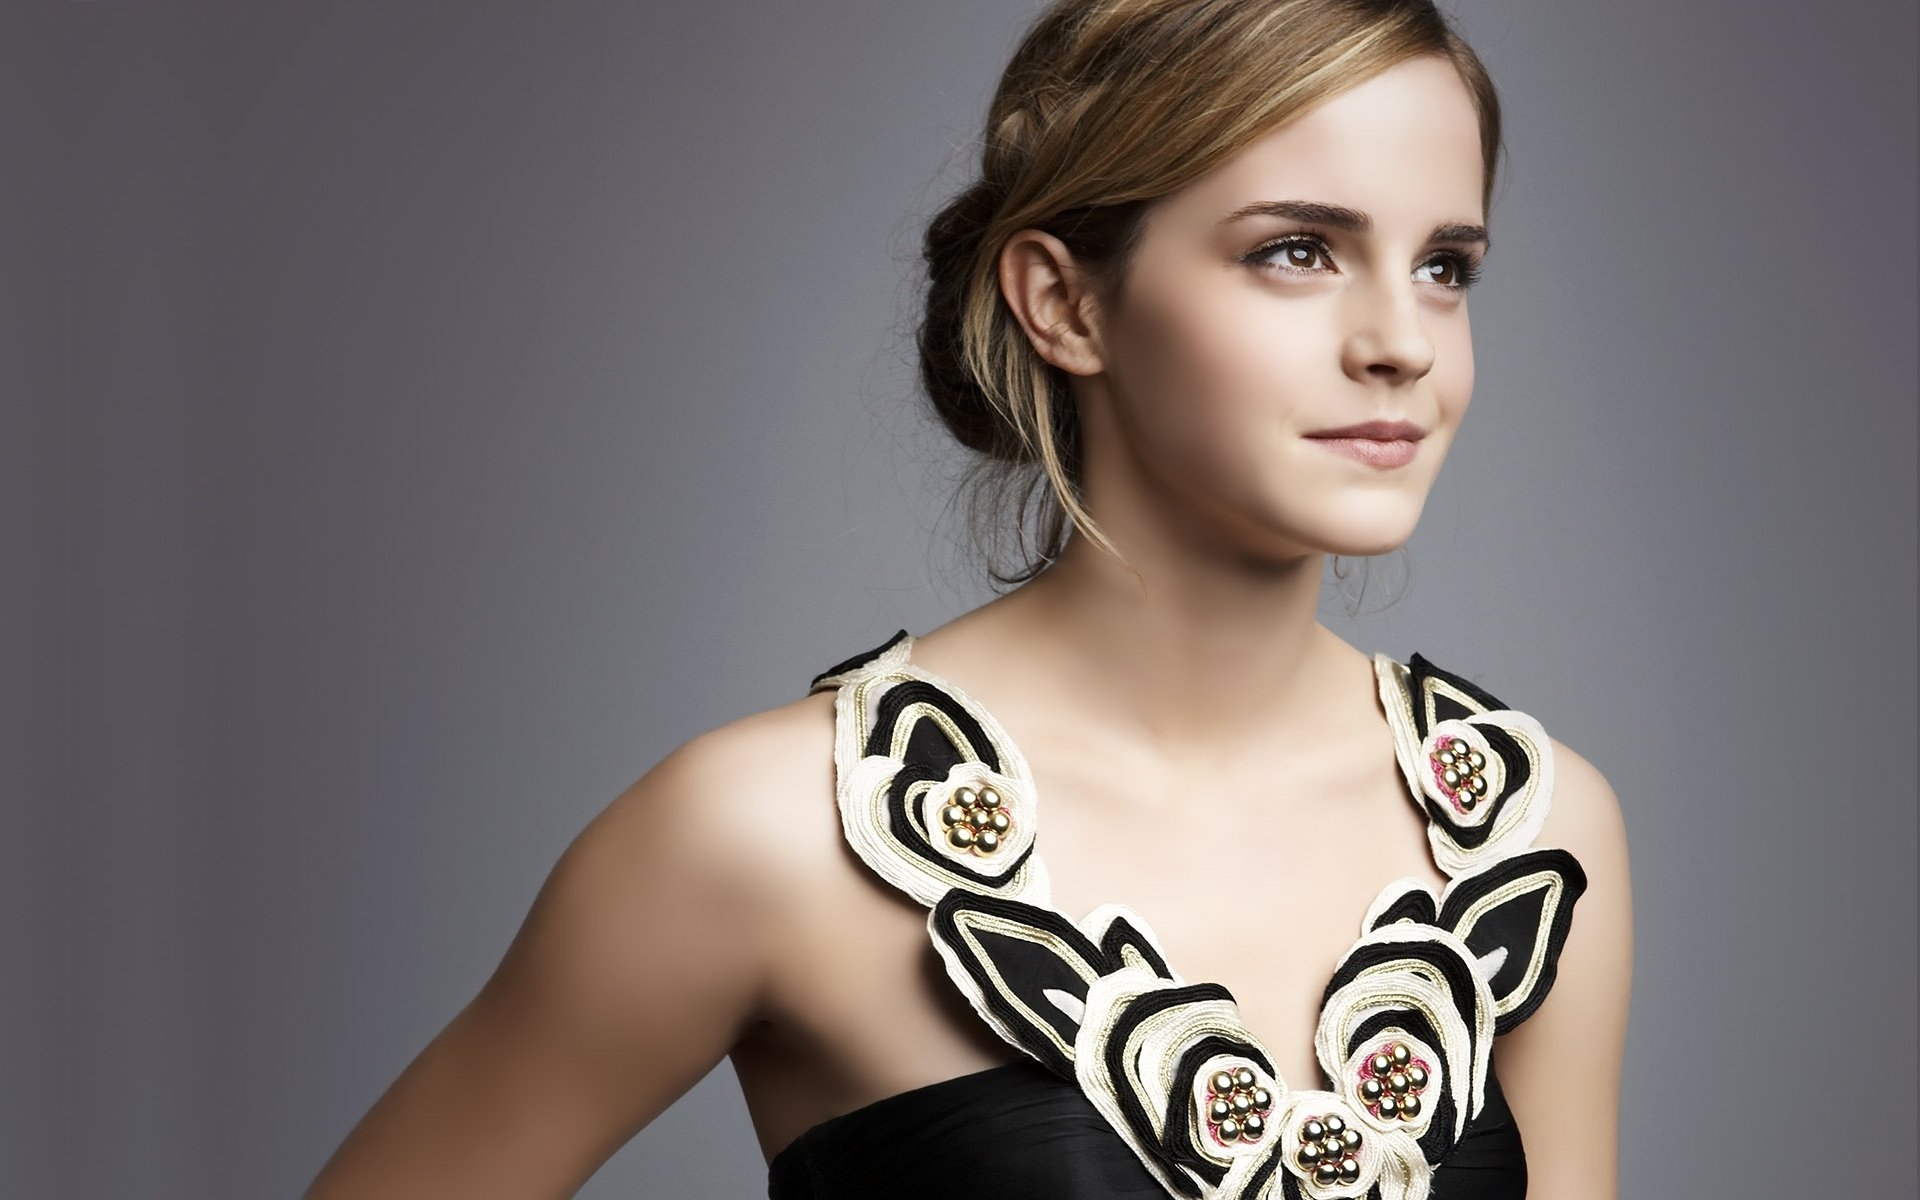 647 Emma Watson HD Wallpapers | Background Images - Wallpaper Abyss